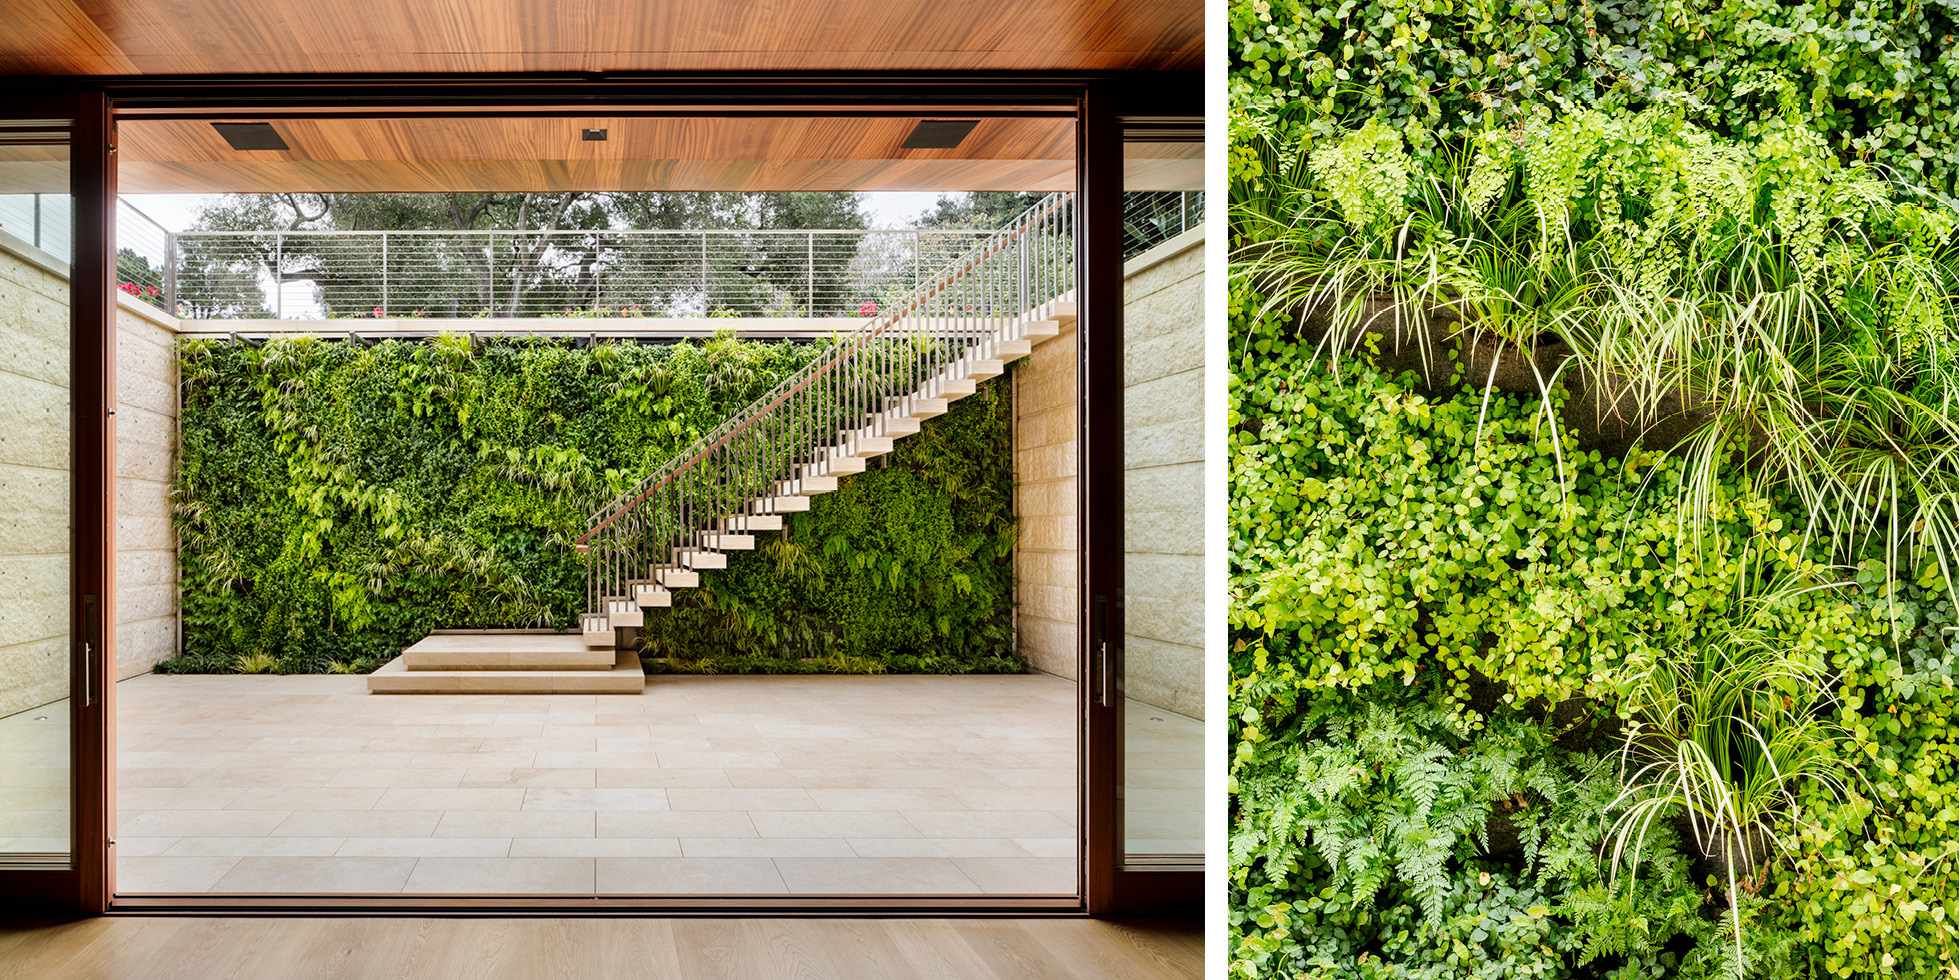 Atherton Residence Living Wall by Habitat Horticulture - View 4